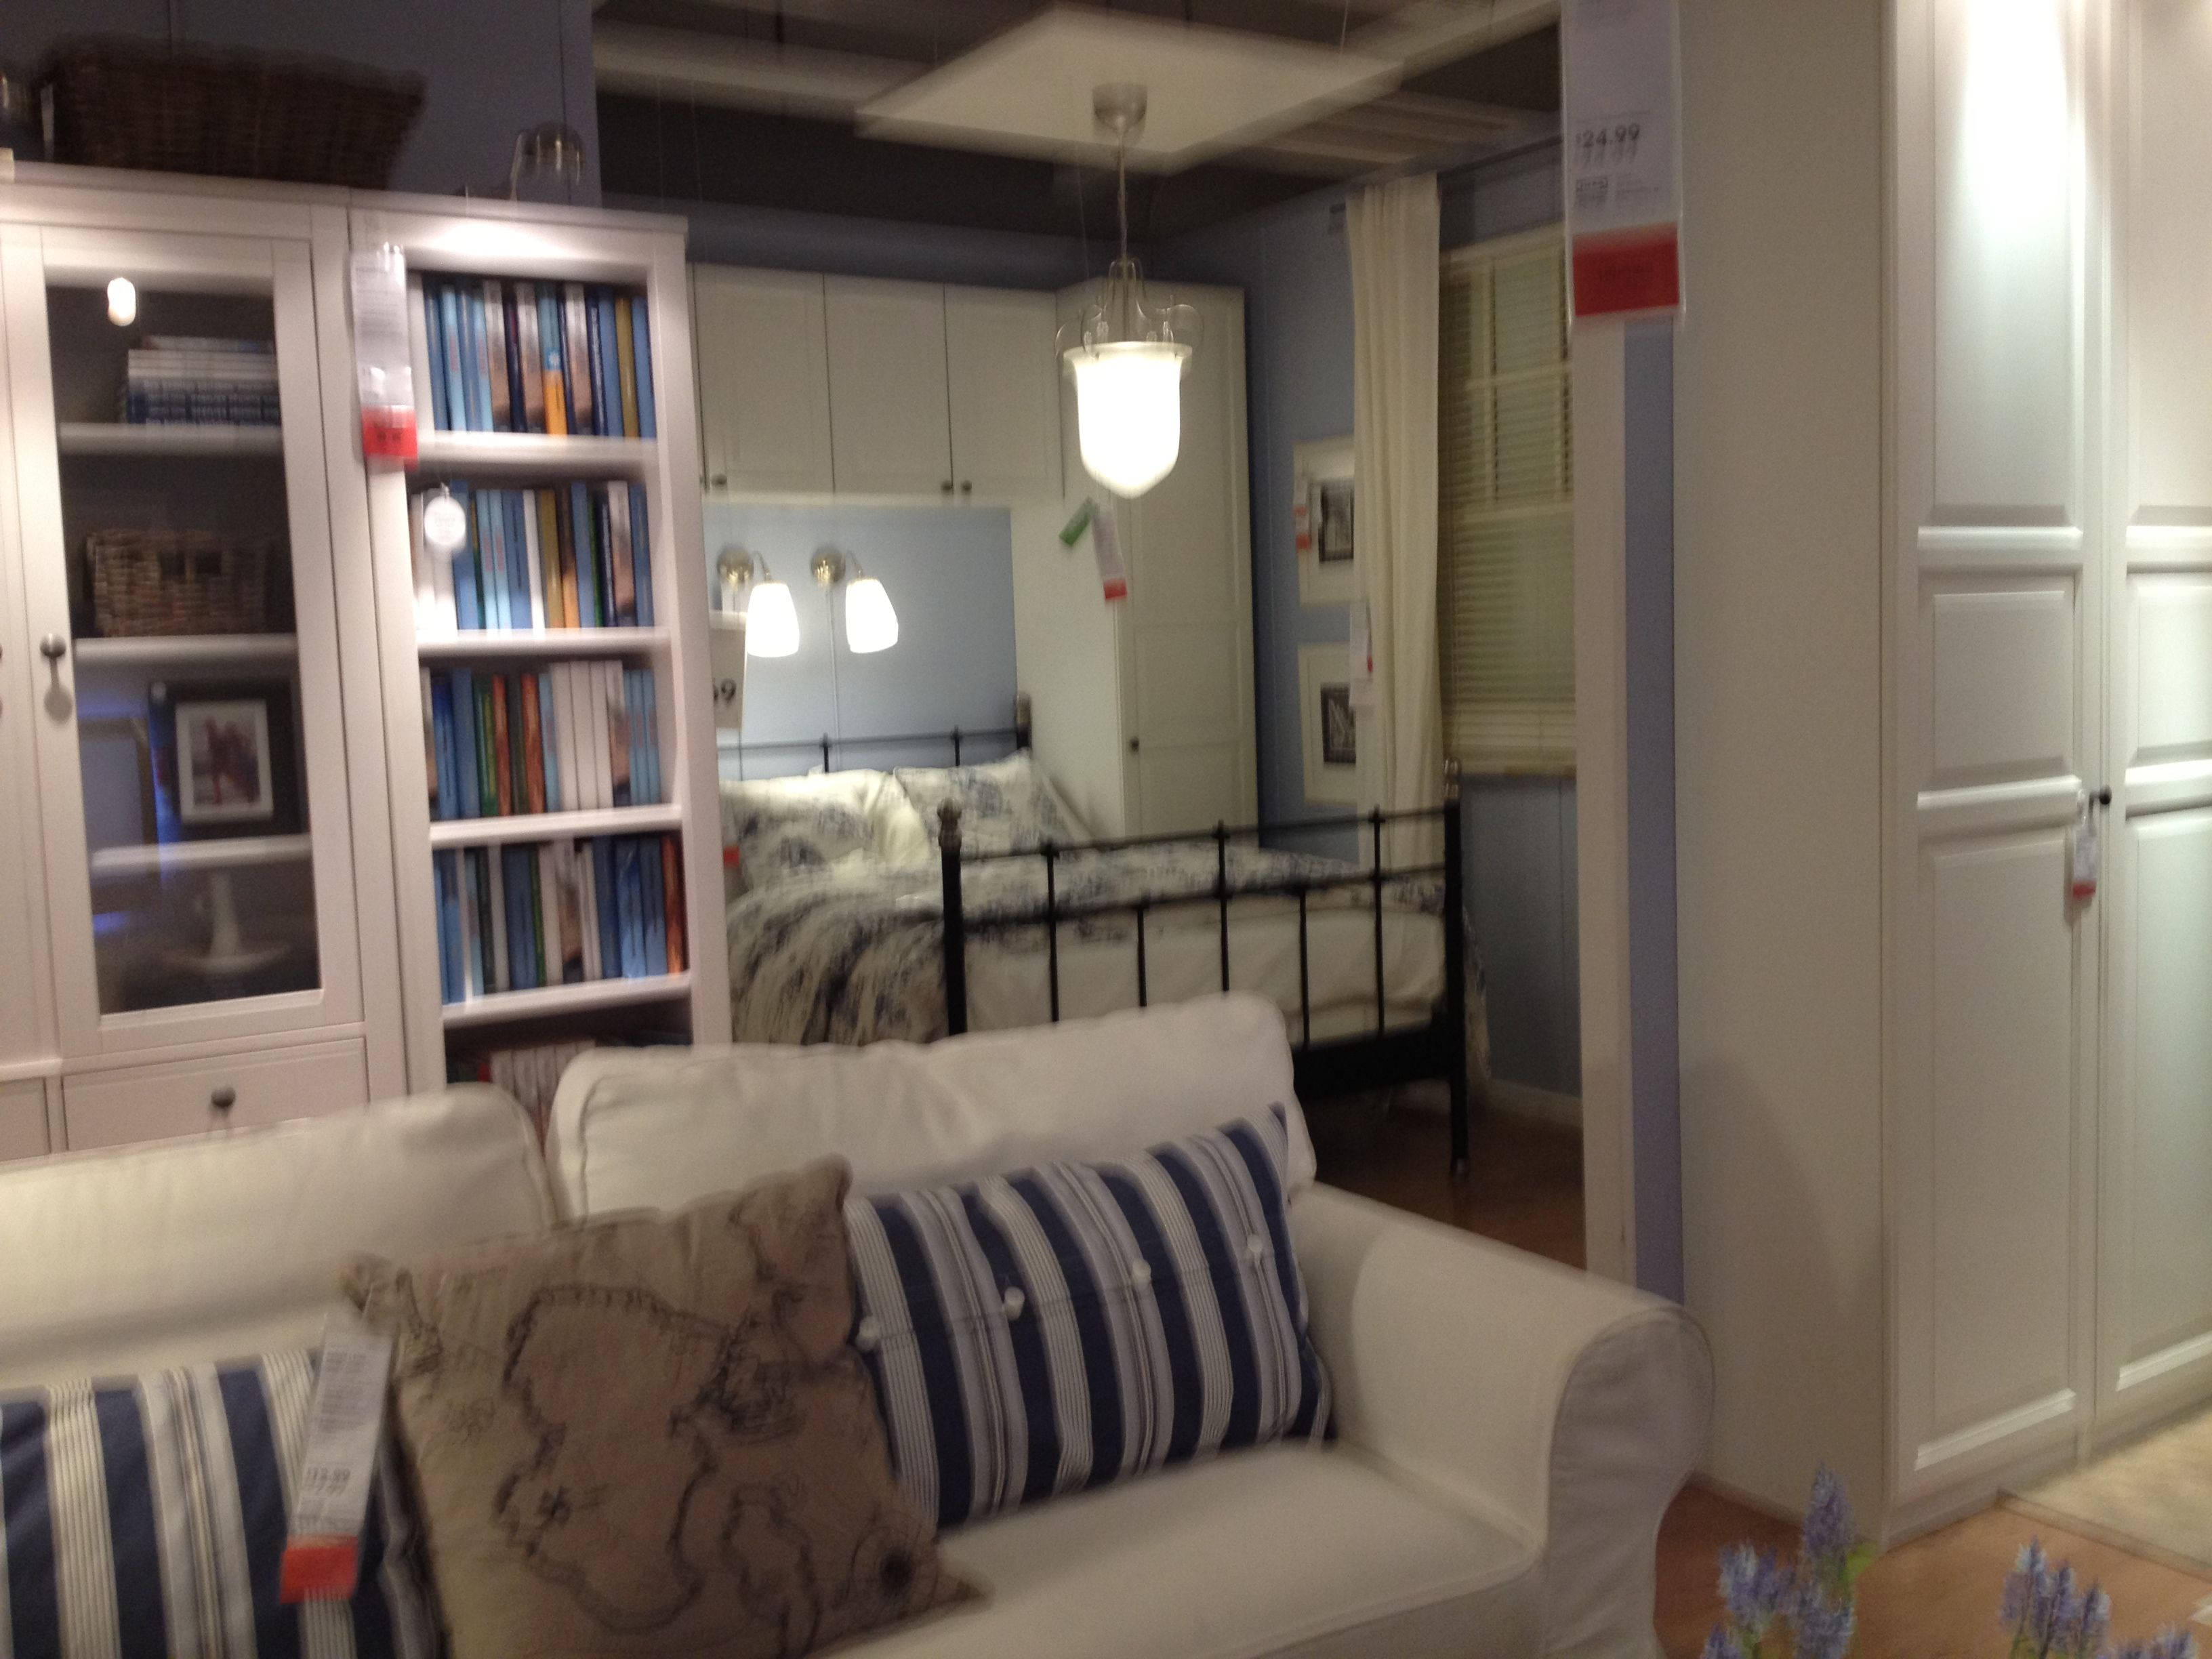 Ikea Small House Plan Small Space Living Decorating Small Spaces Tiny Spaces